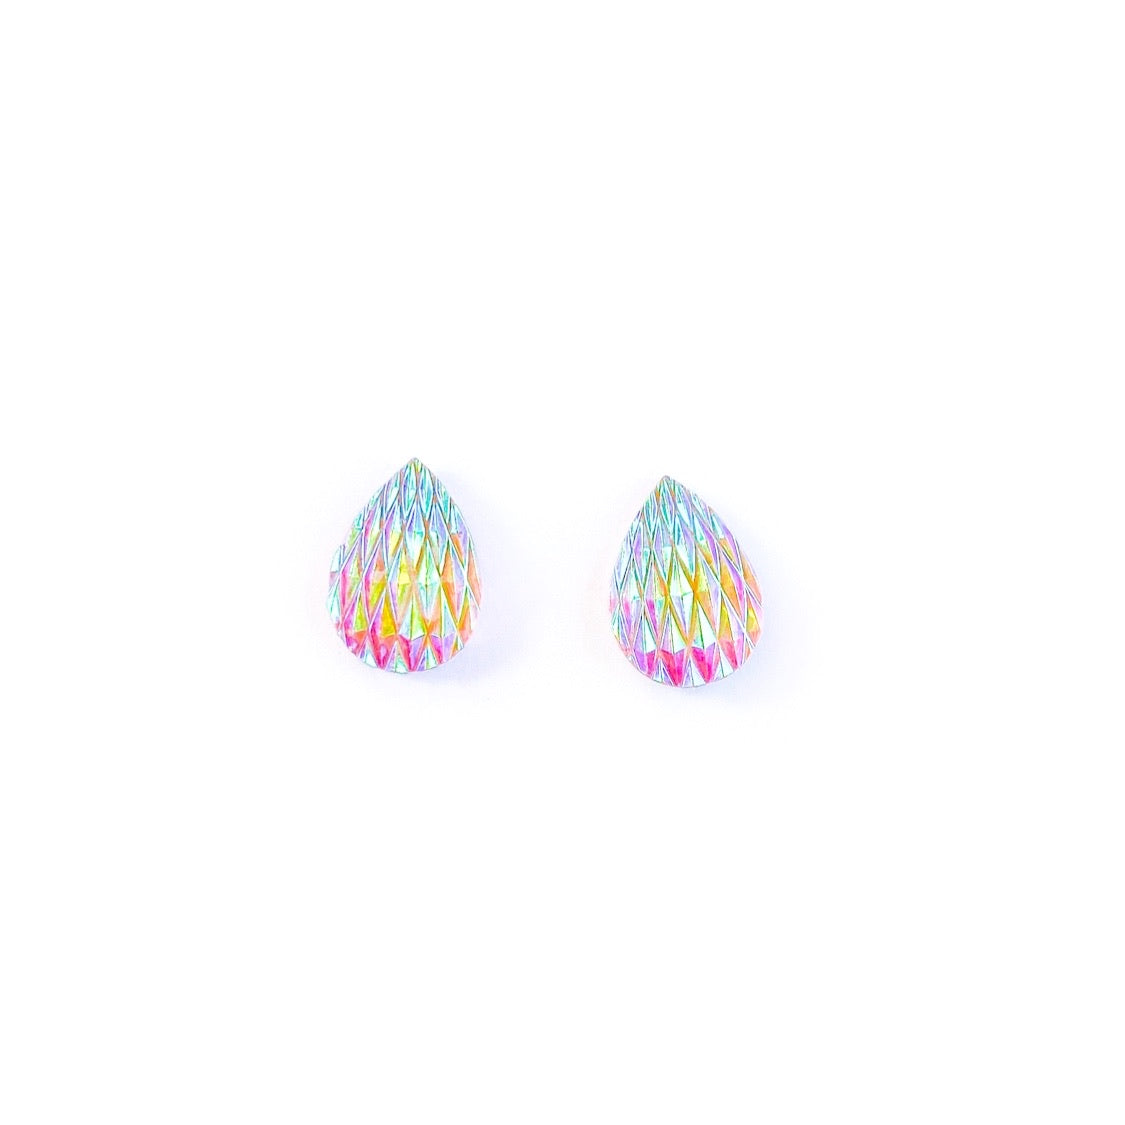 Sunset Shells - 13mm Shaped Studs